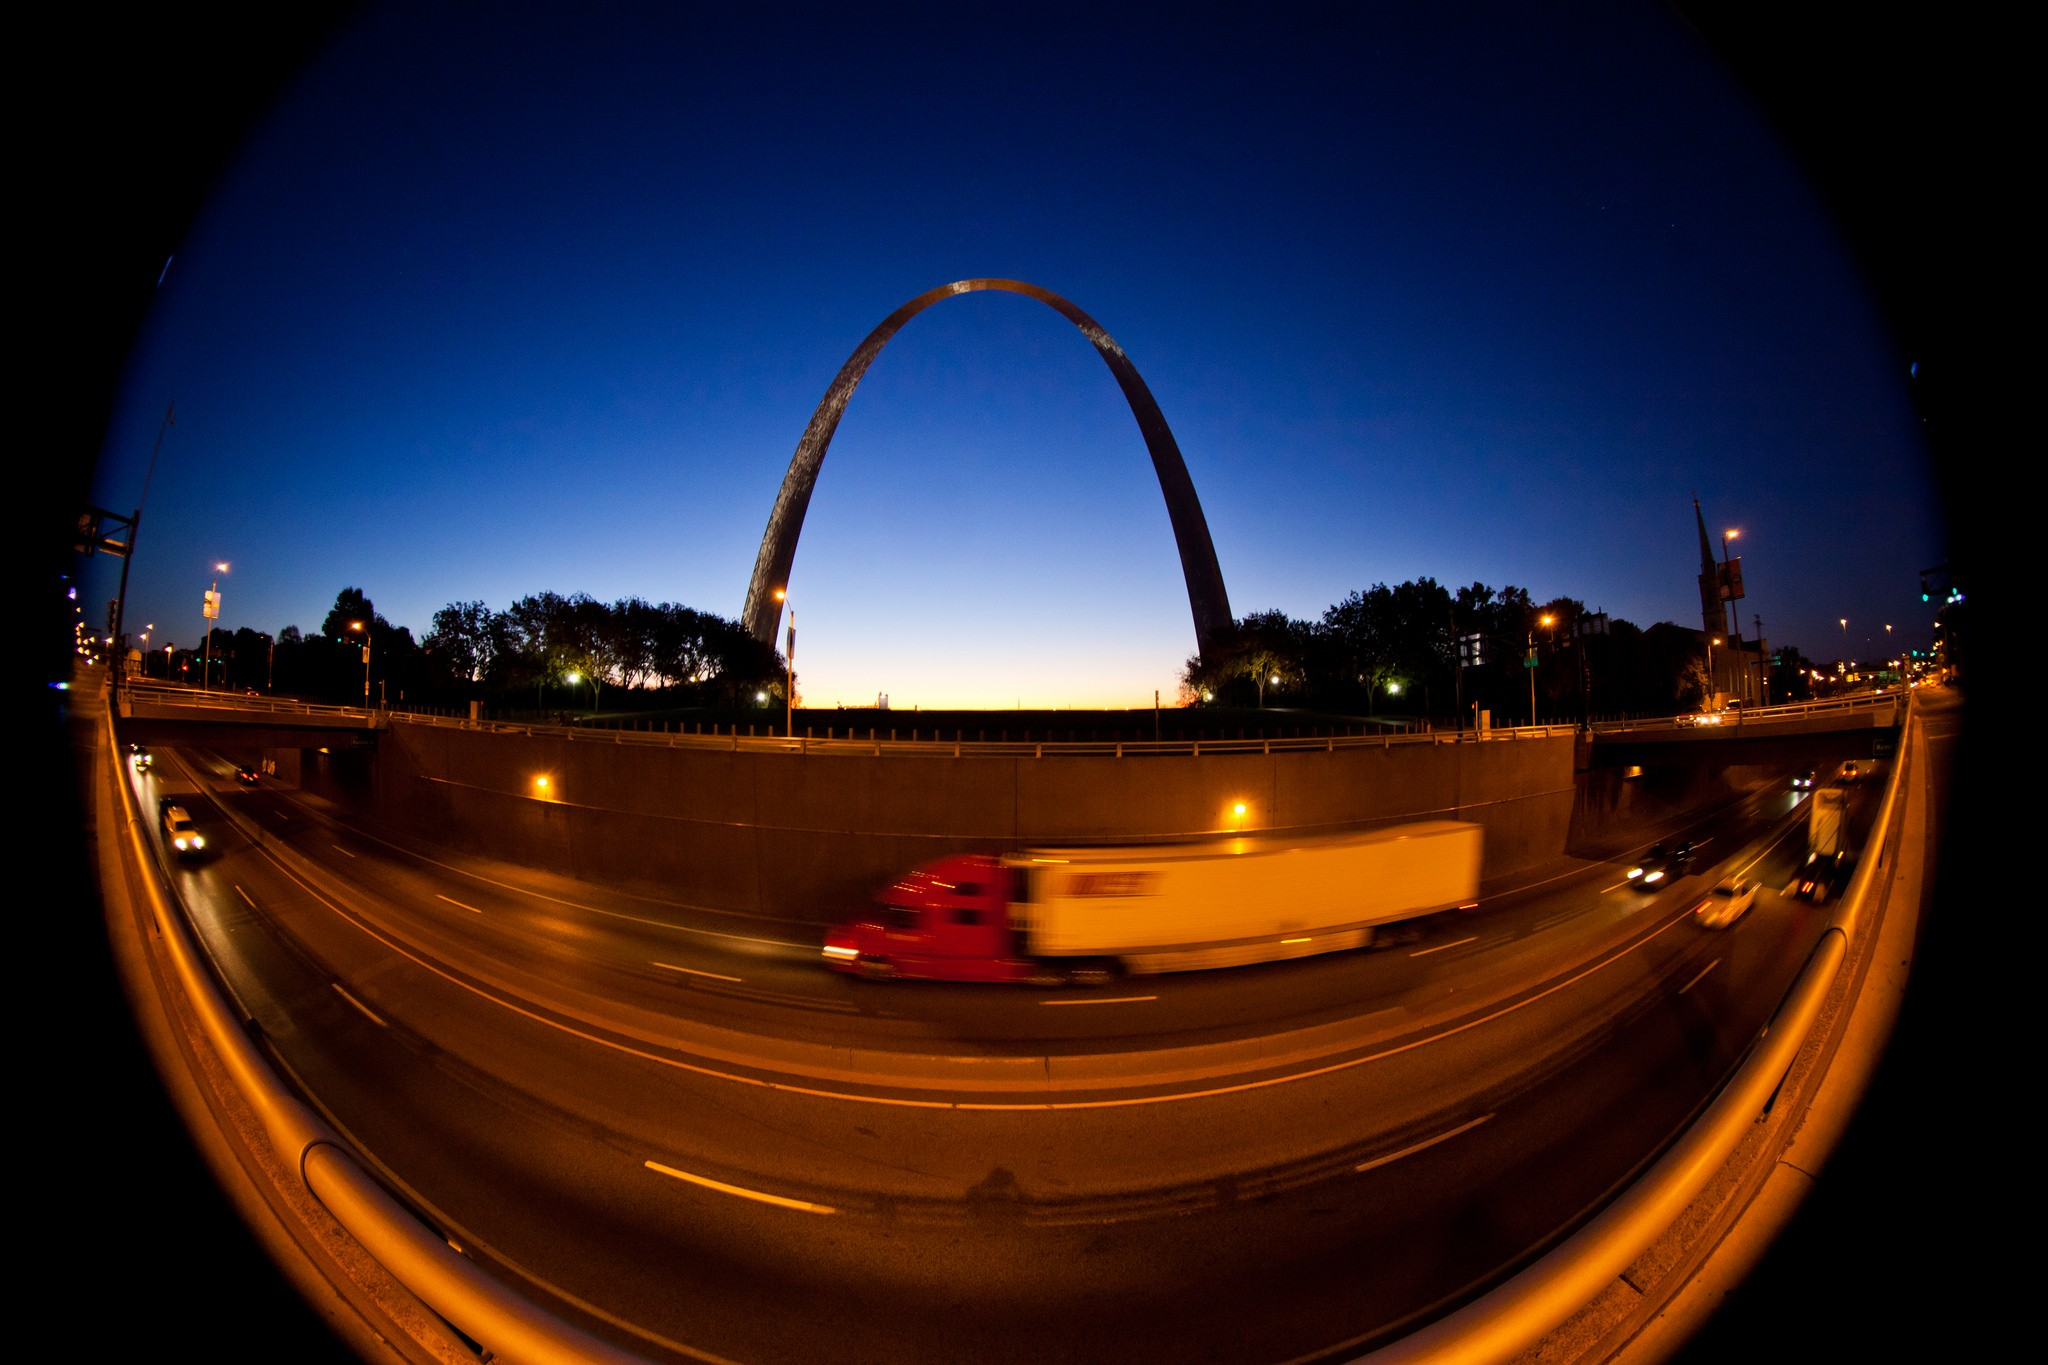 St  Louis Is No  2 on Forbes' List of 'Top 10 Rising Cities